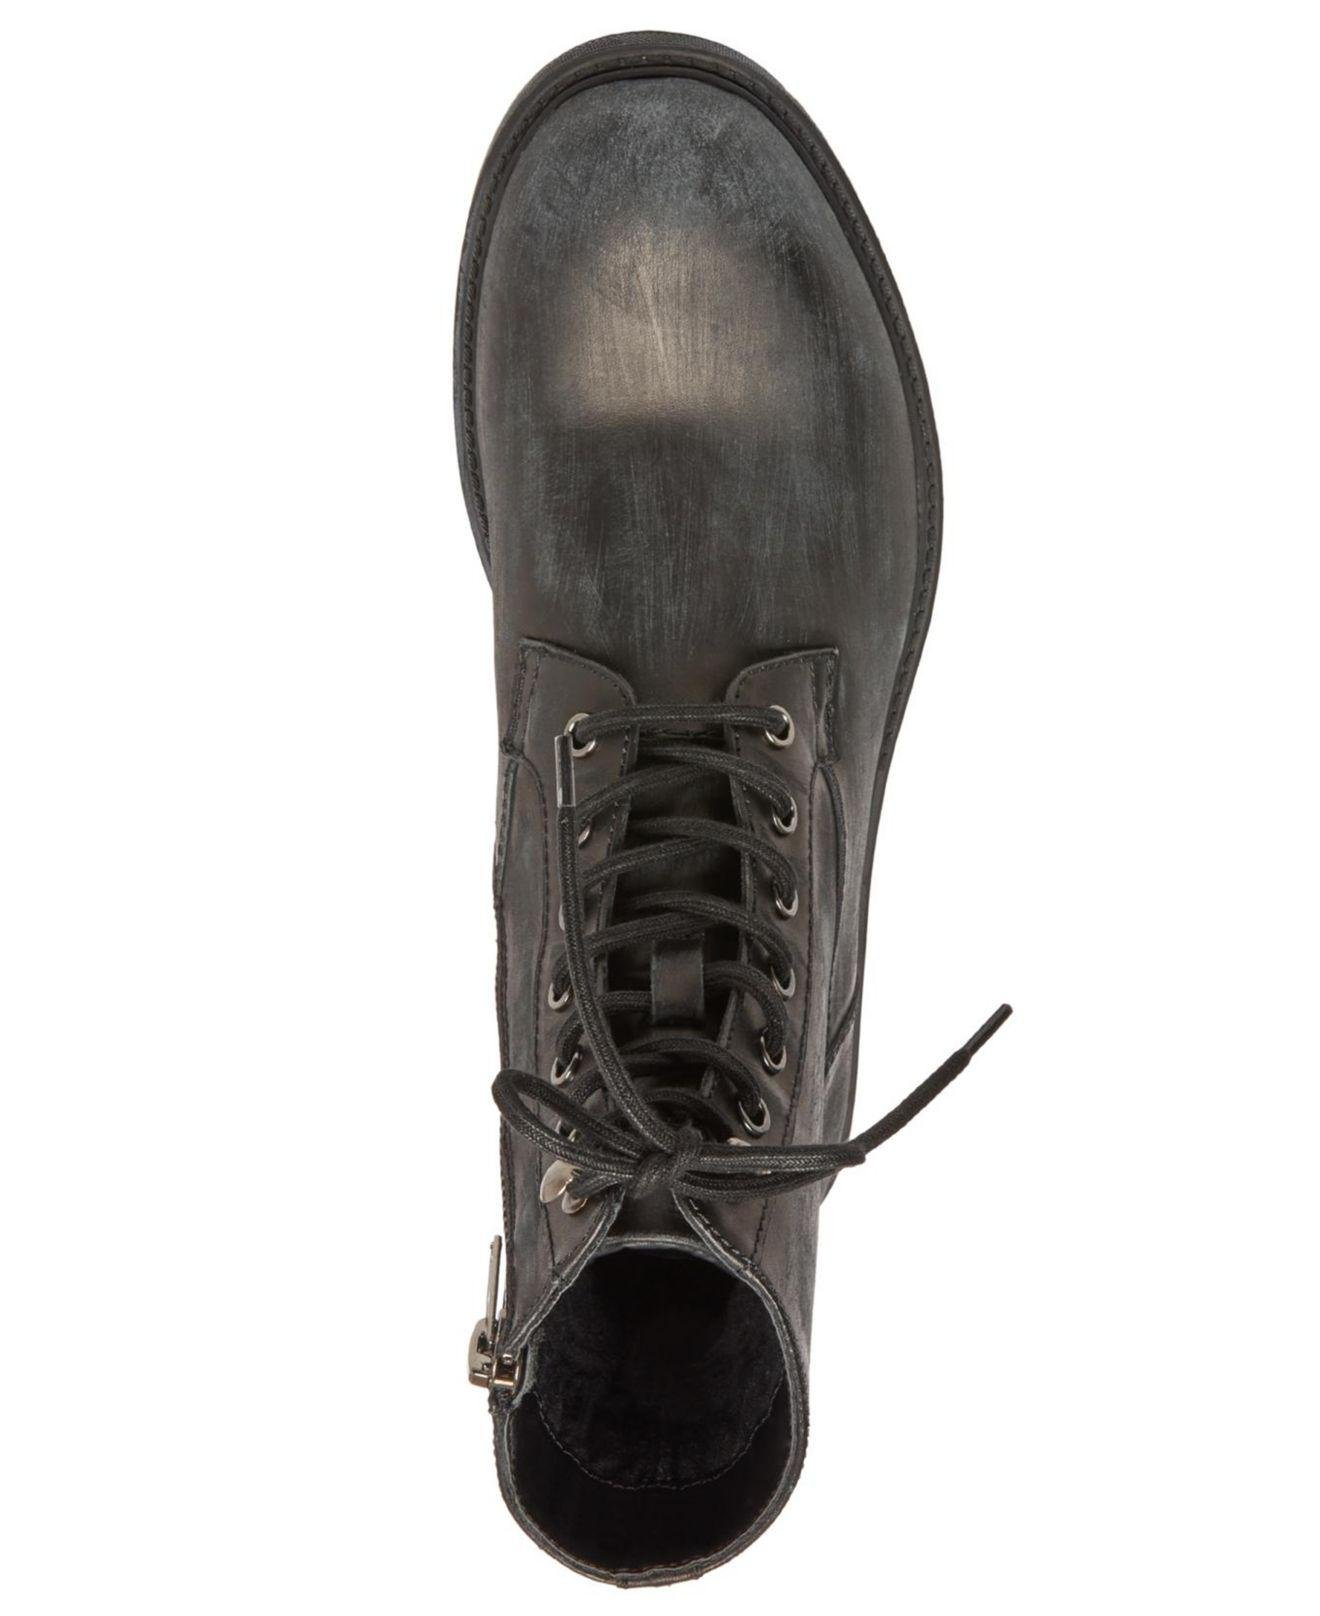 84b5d19bd77eb2 Steve Madden Smoky Leather Boots in Gray for Men - Lyst